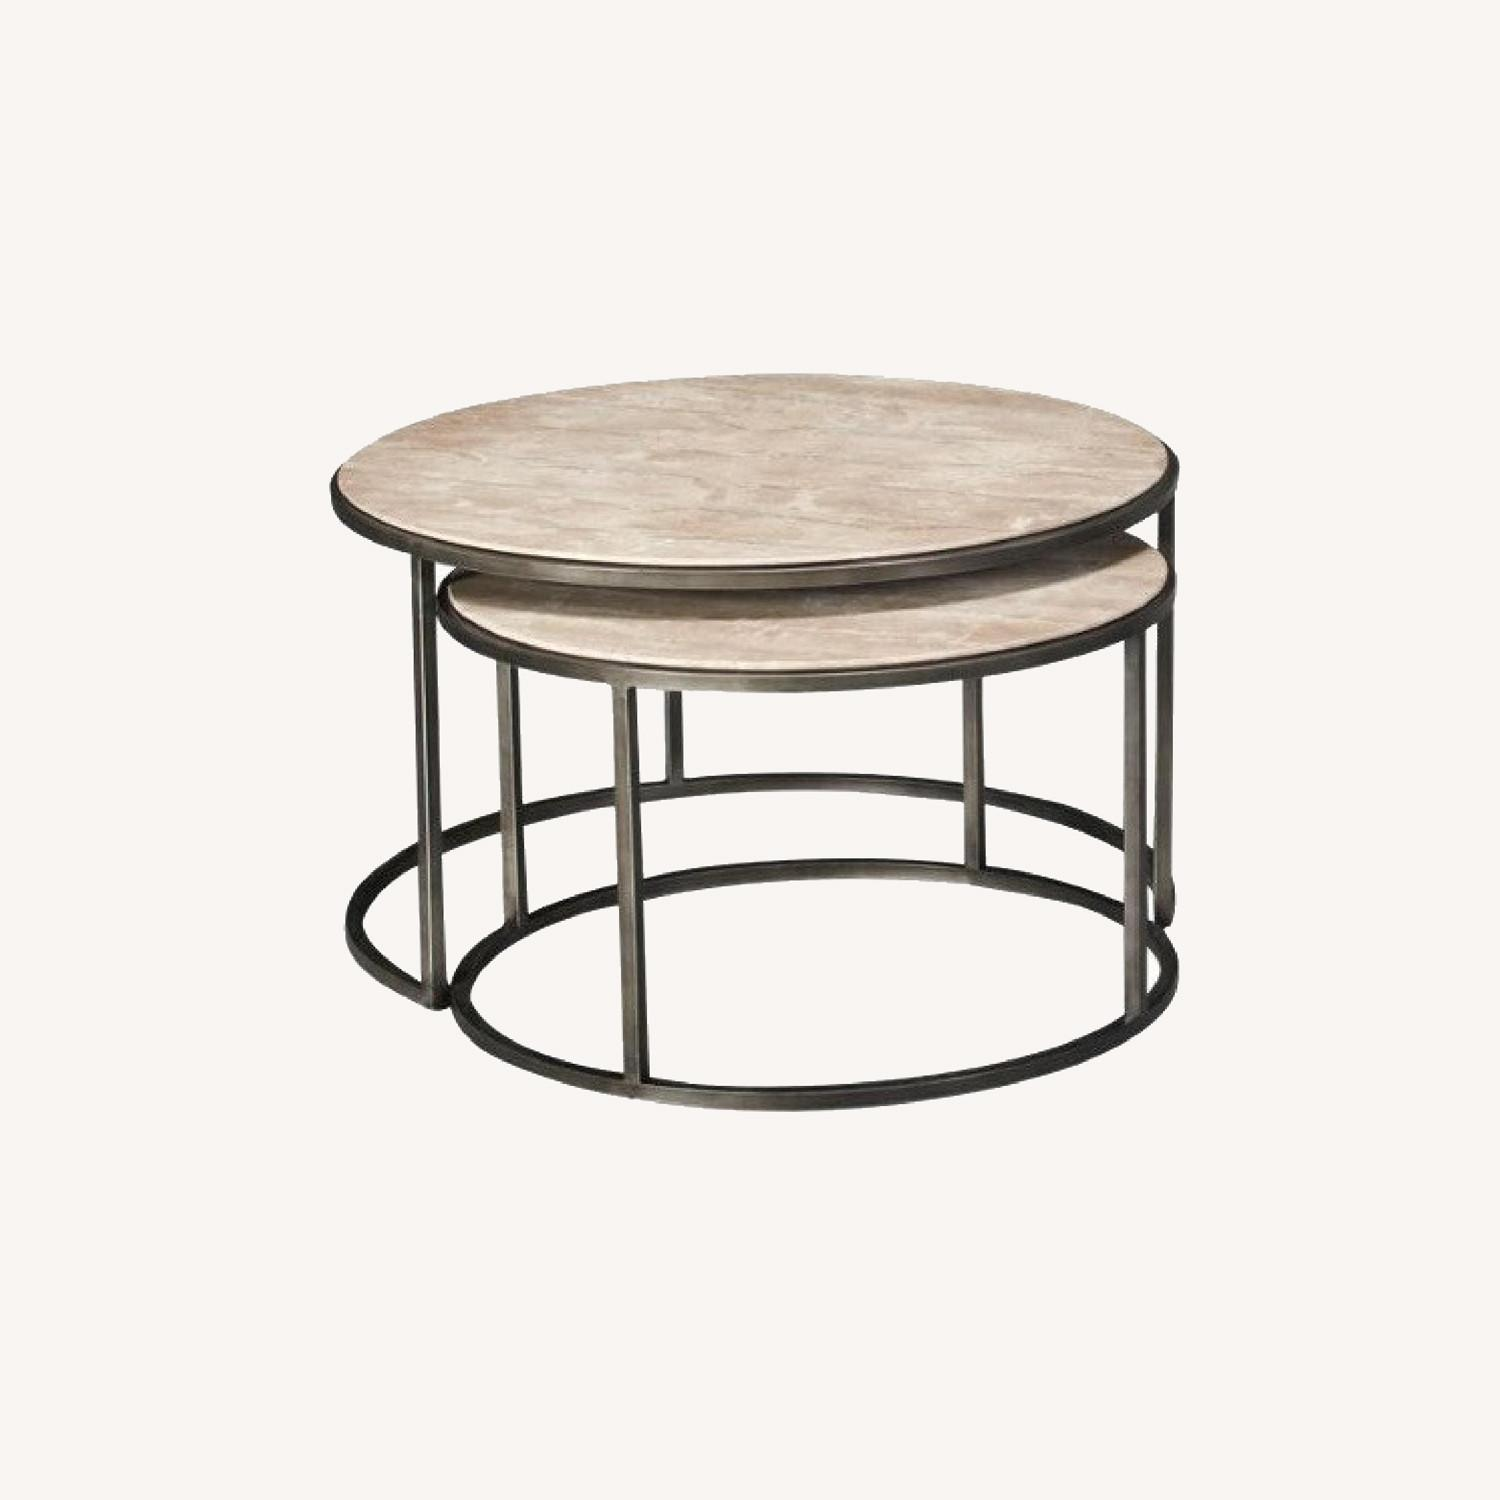 Travertine Marble Nesting Coffee Tables - image-0